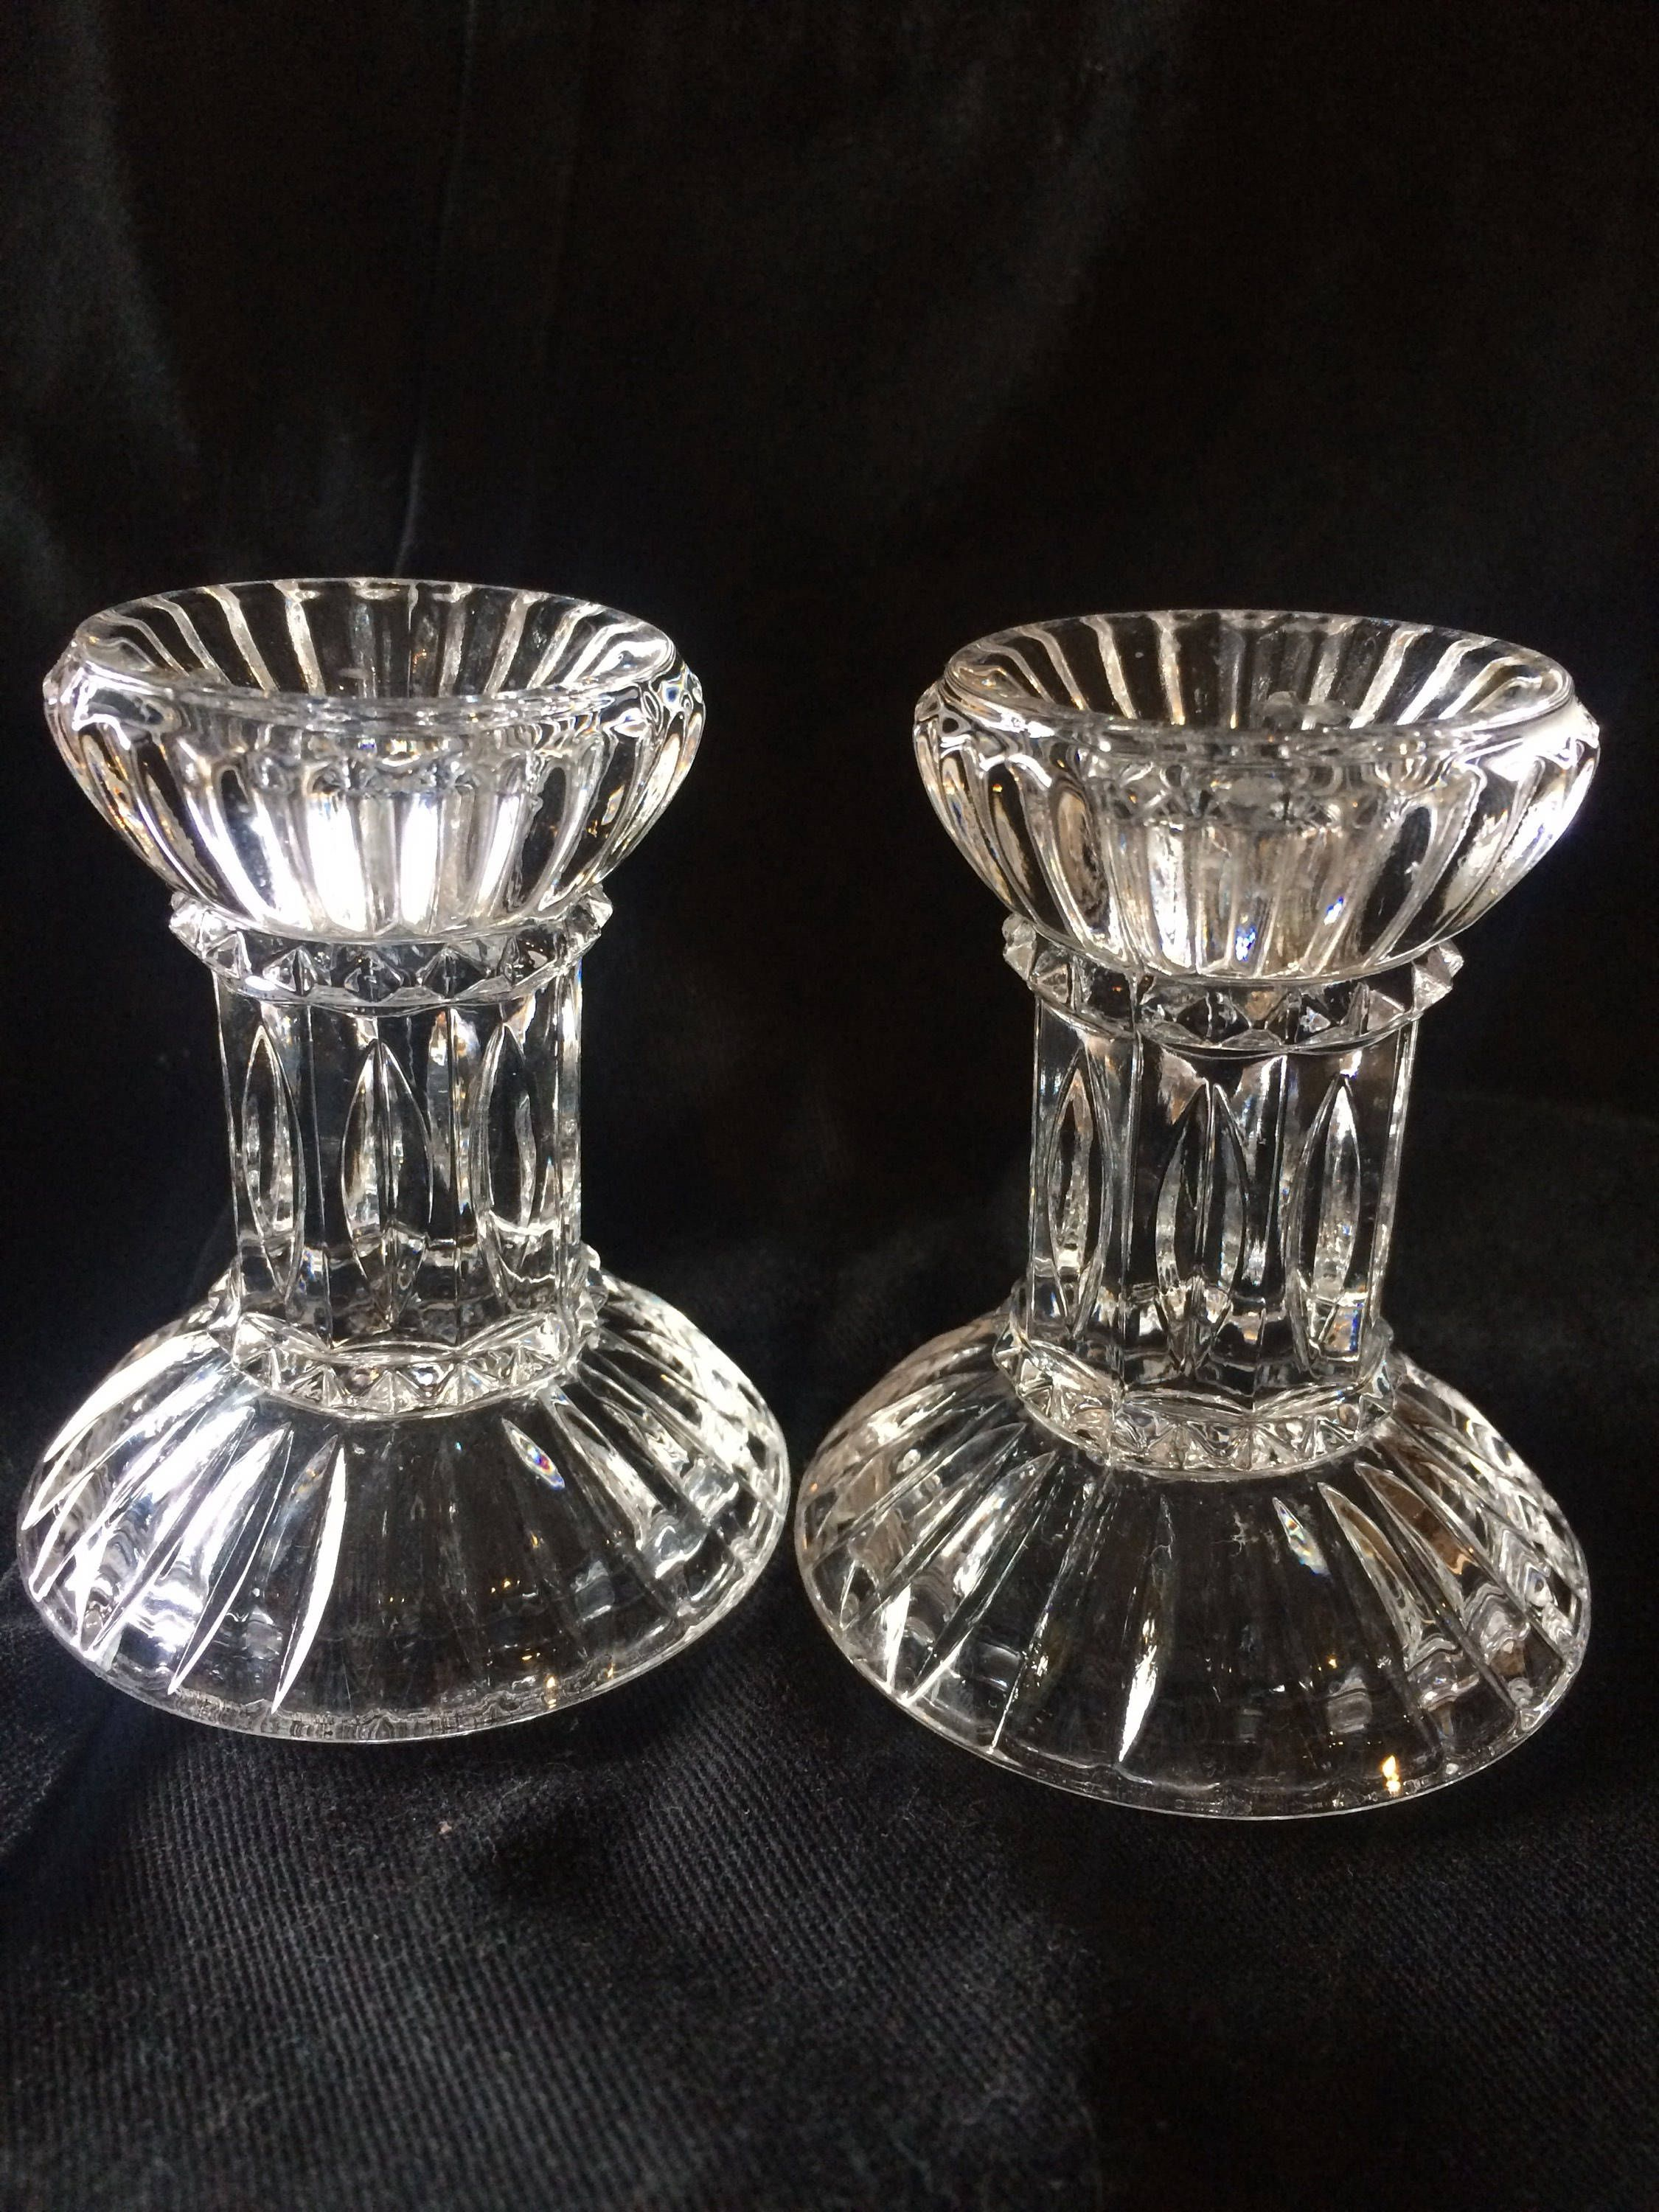 Vintage Lead Crystal Candle Holders Single Taper By Some1likeyou On Etsy Crystal Candle Holder Candle Holders Vintage Glass Candle Holders